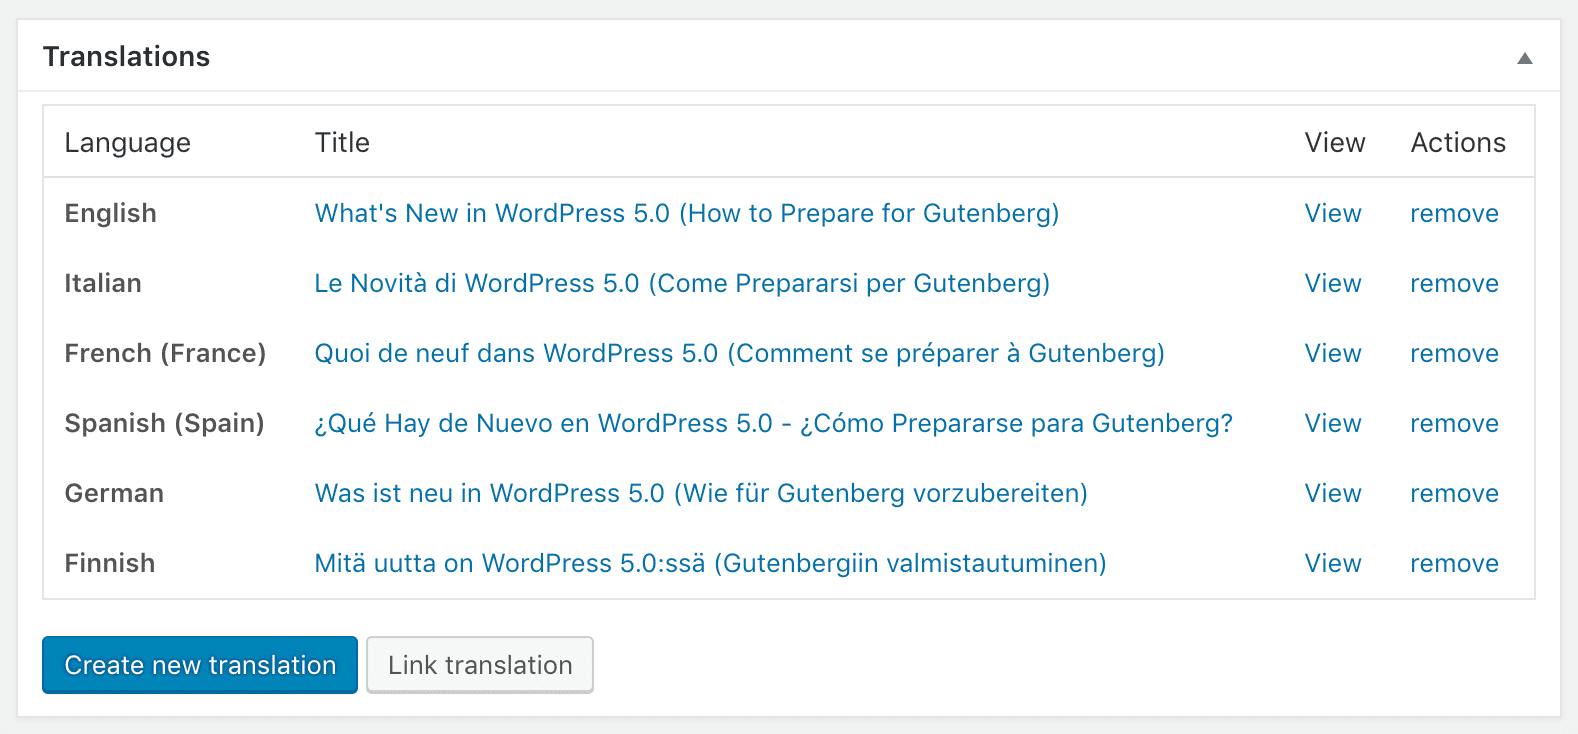 Linking translations in WordPress